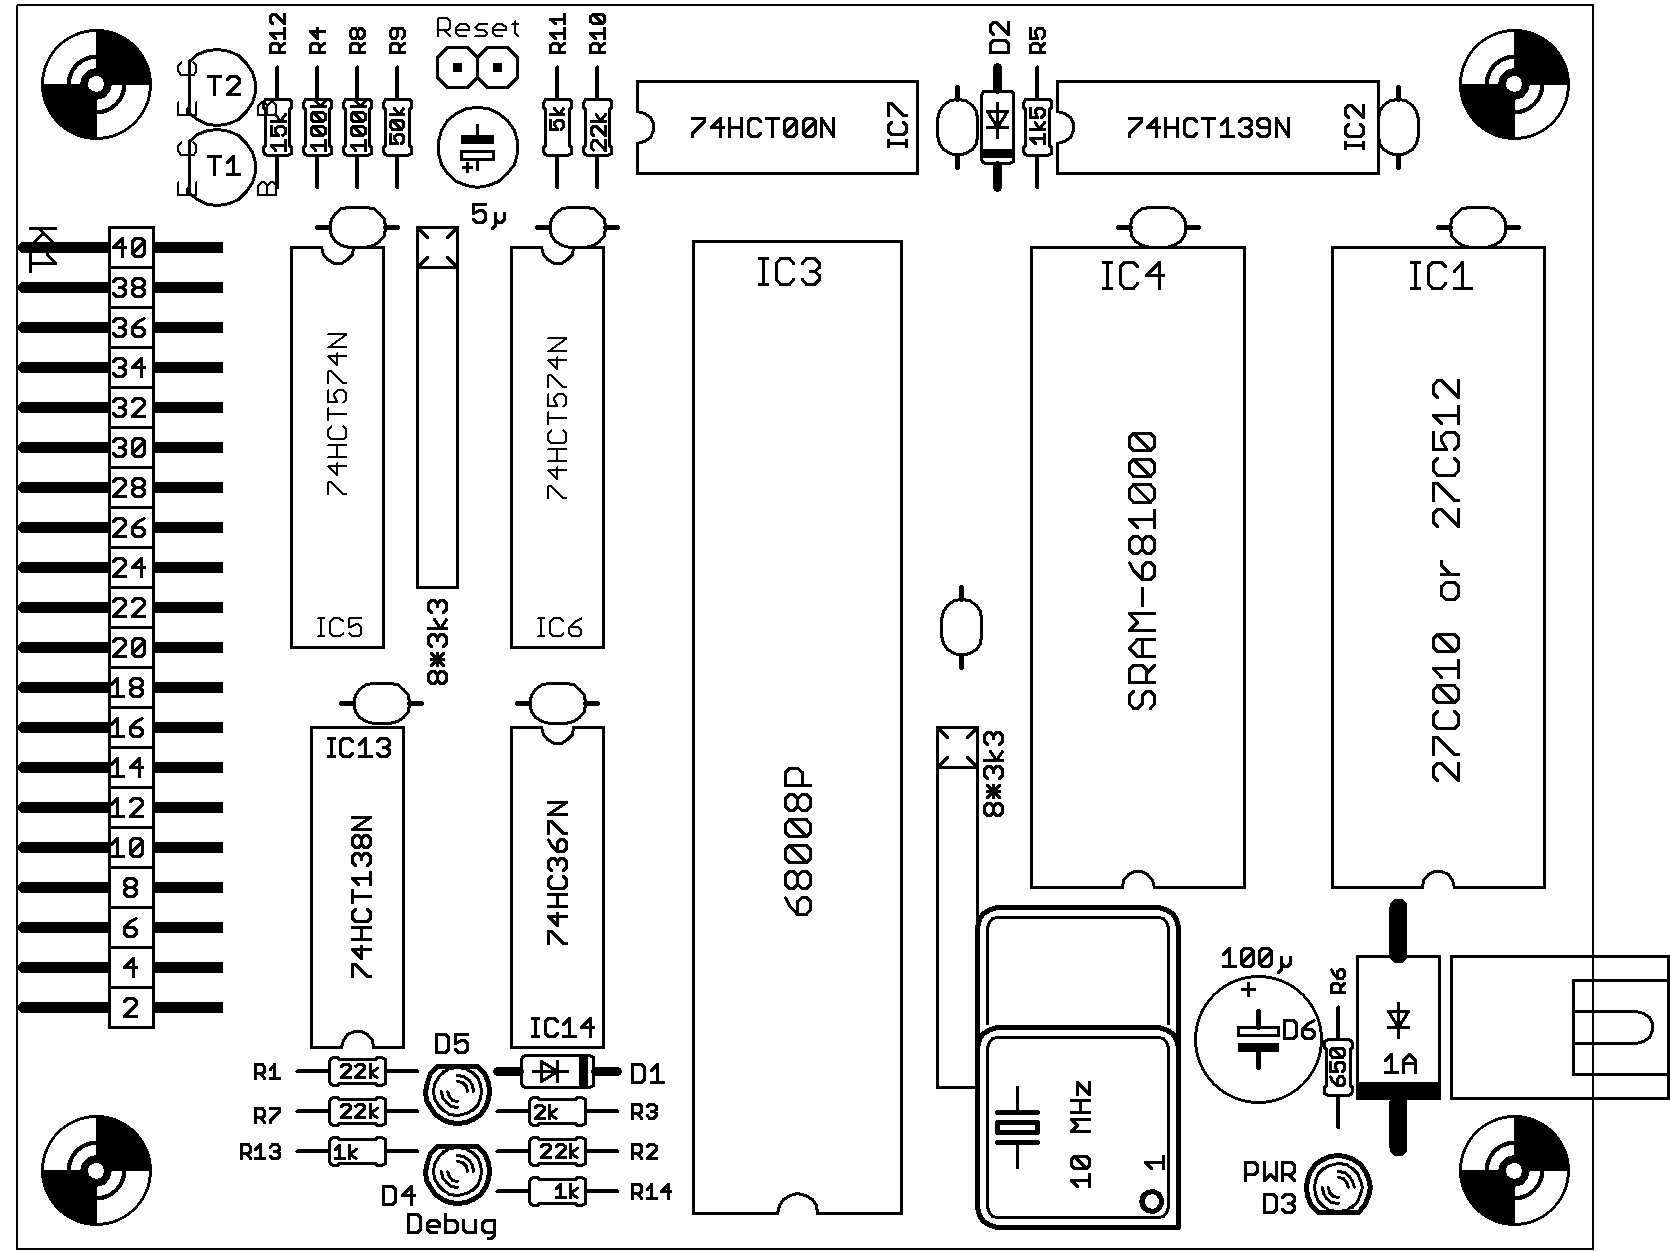 Simple 68008 Microcomputer with SRAM for the K1-Bus